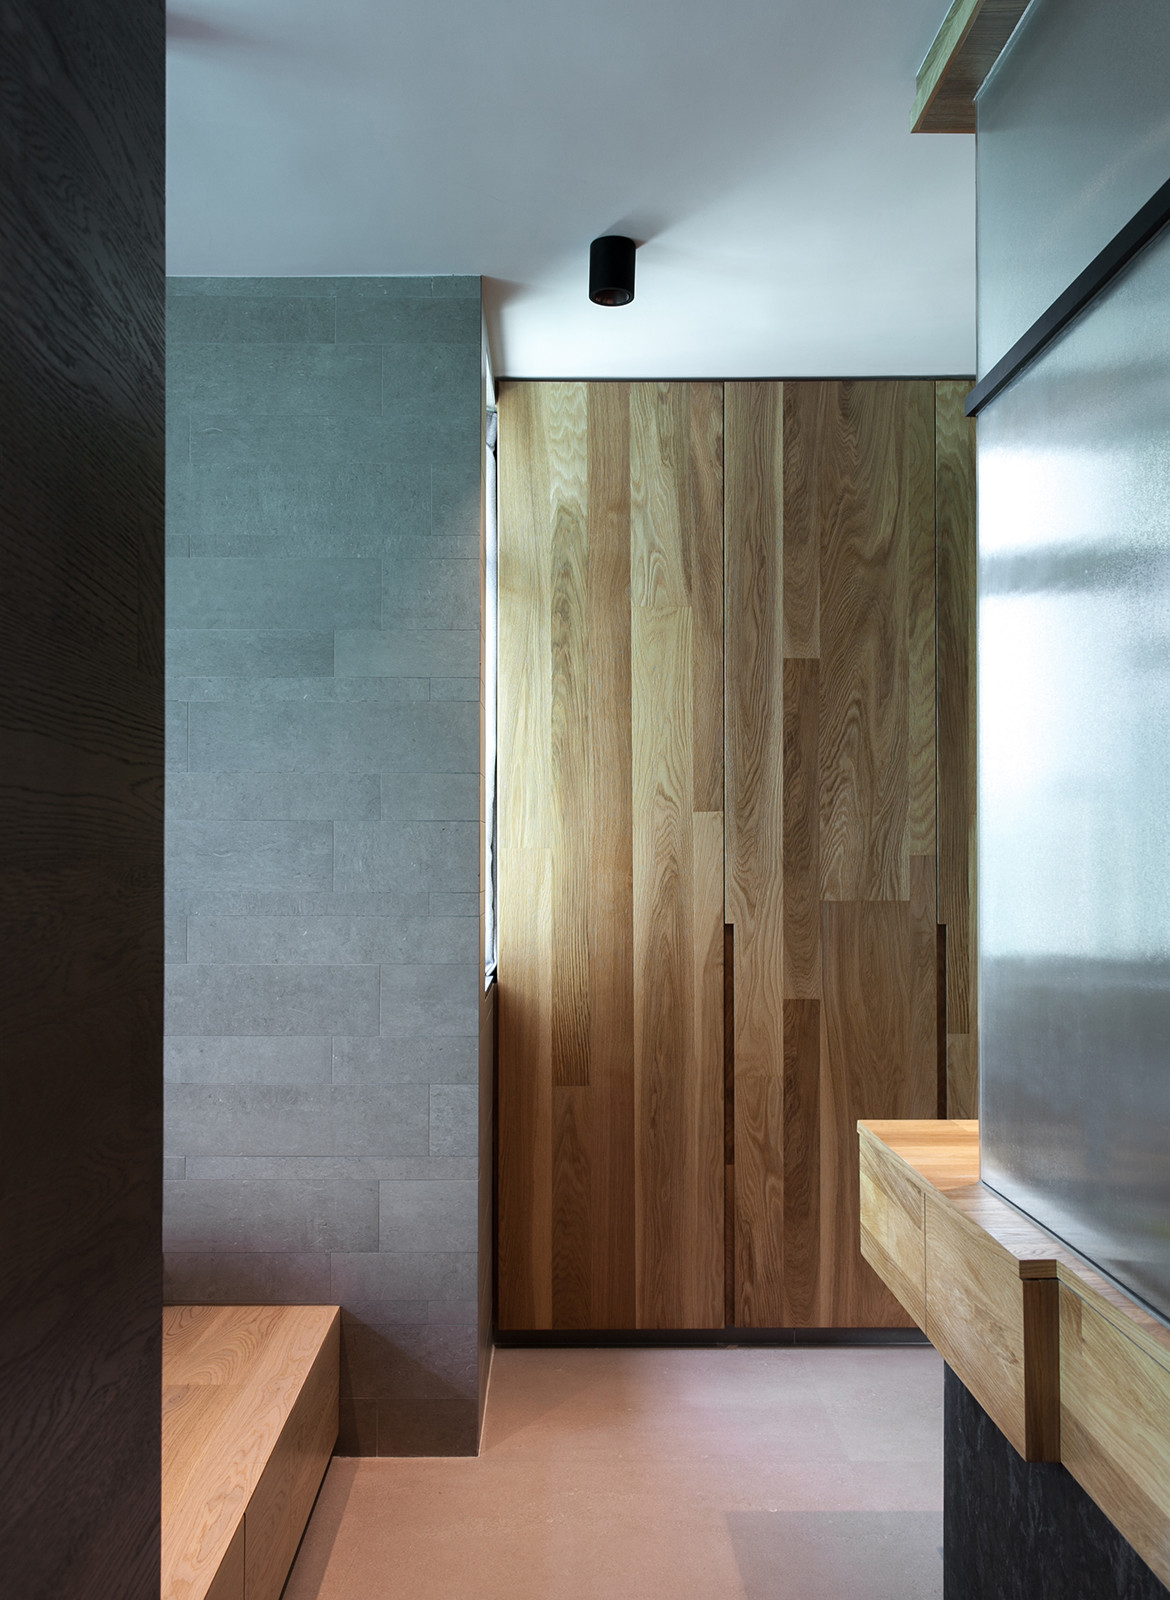 Taikoo Shing Apartment Studio Adjective cupboards